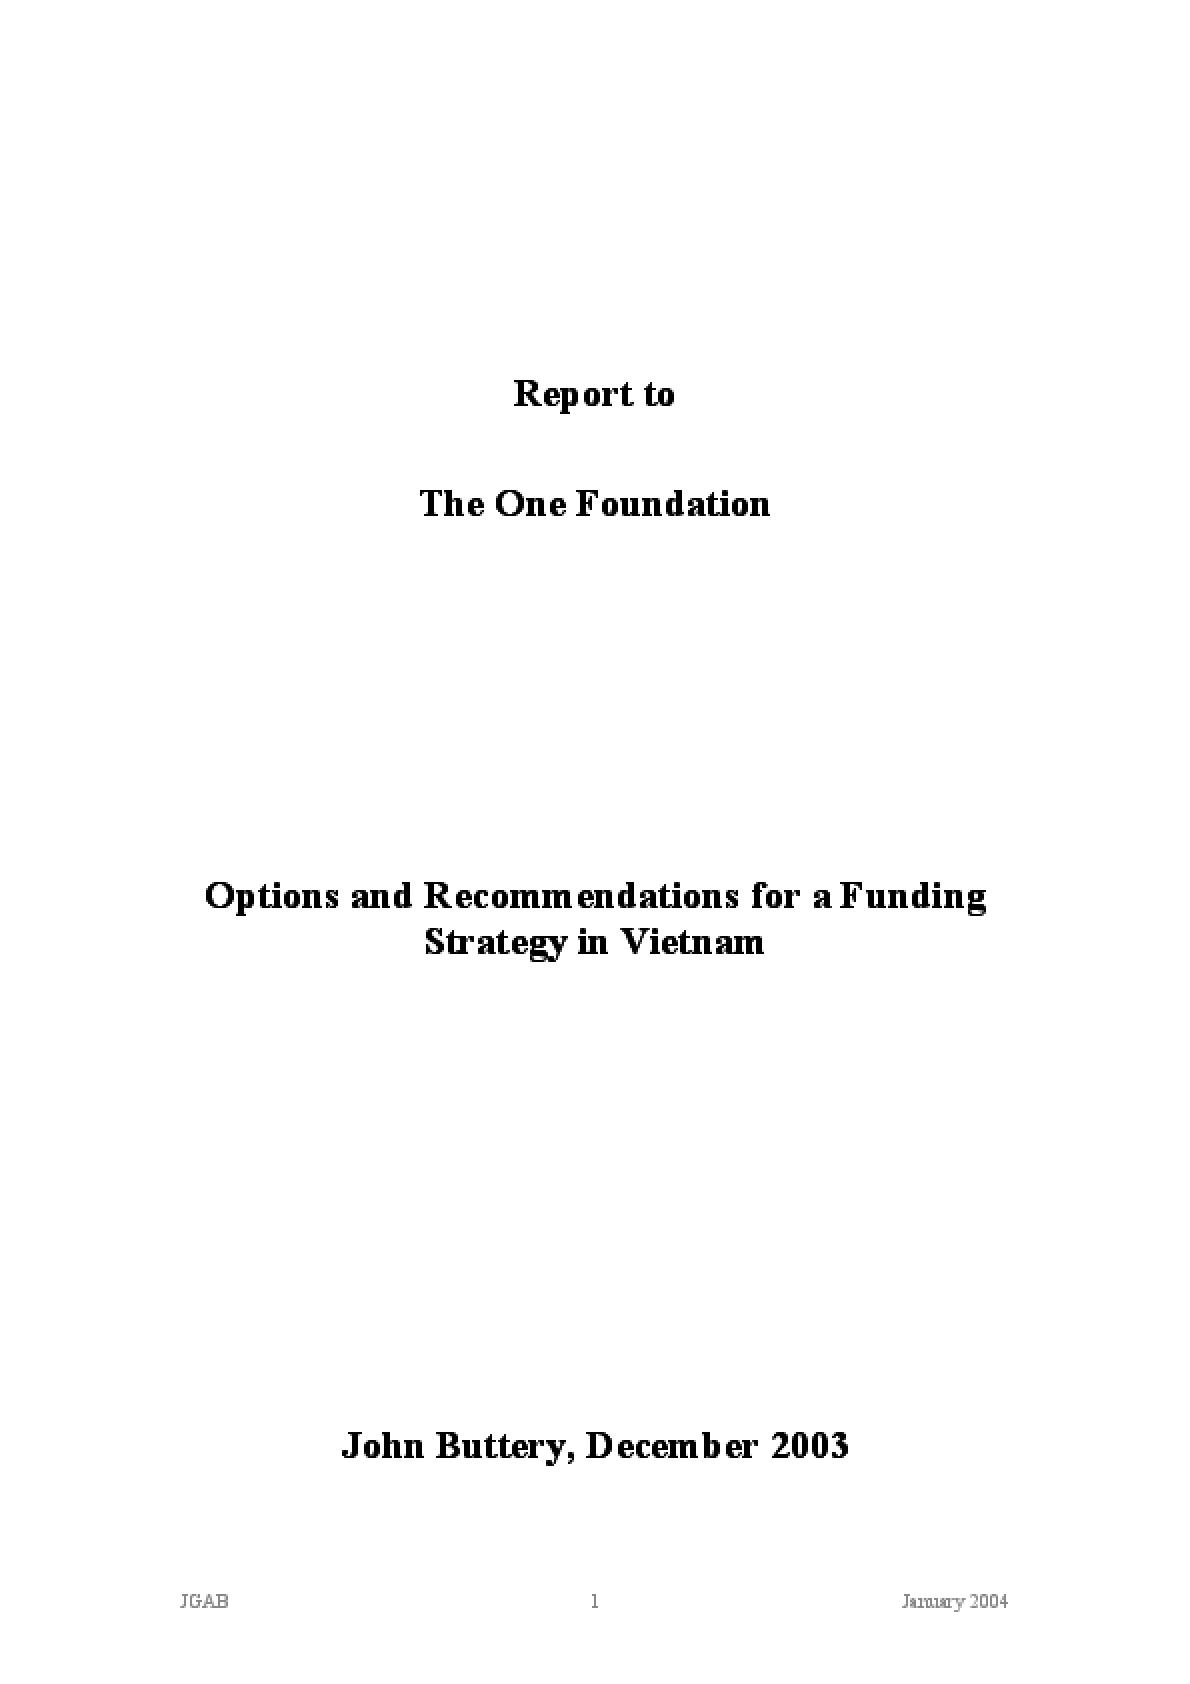 Options and Recommendations for a Funding Strategy in Vietnam